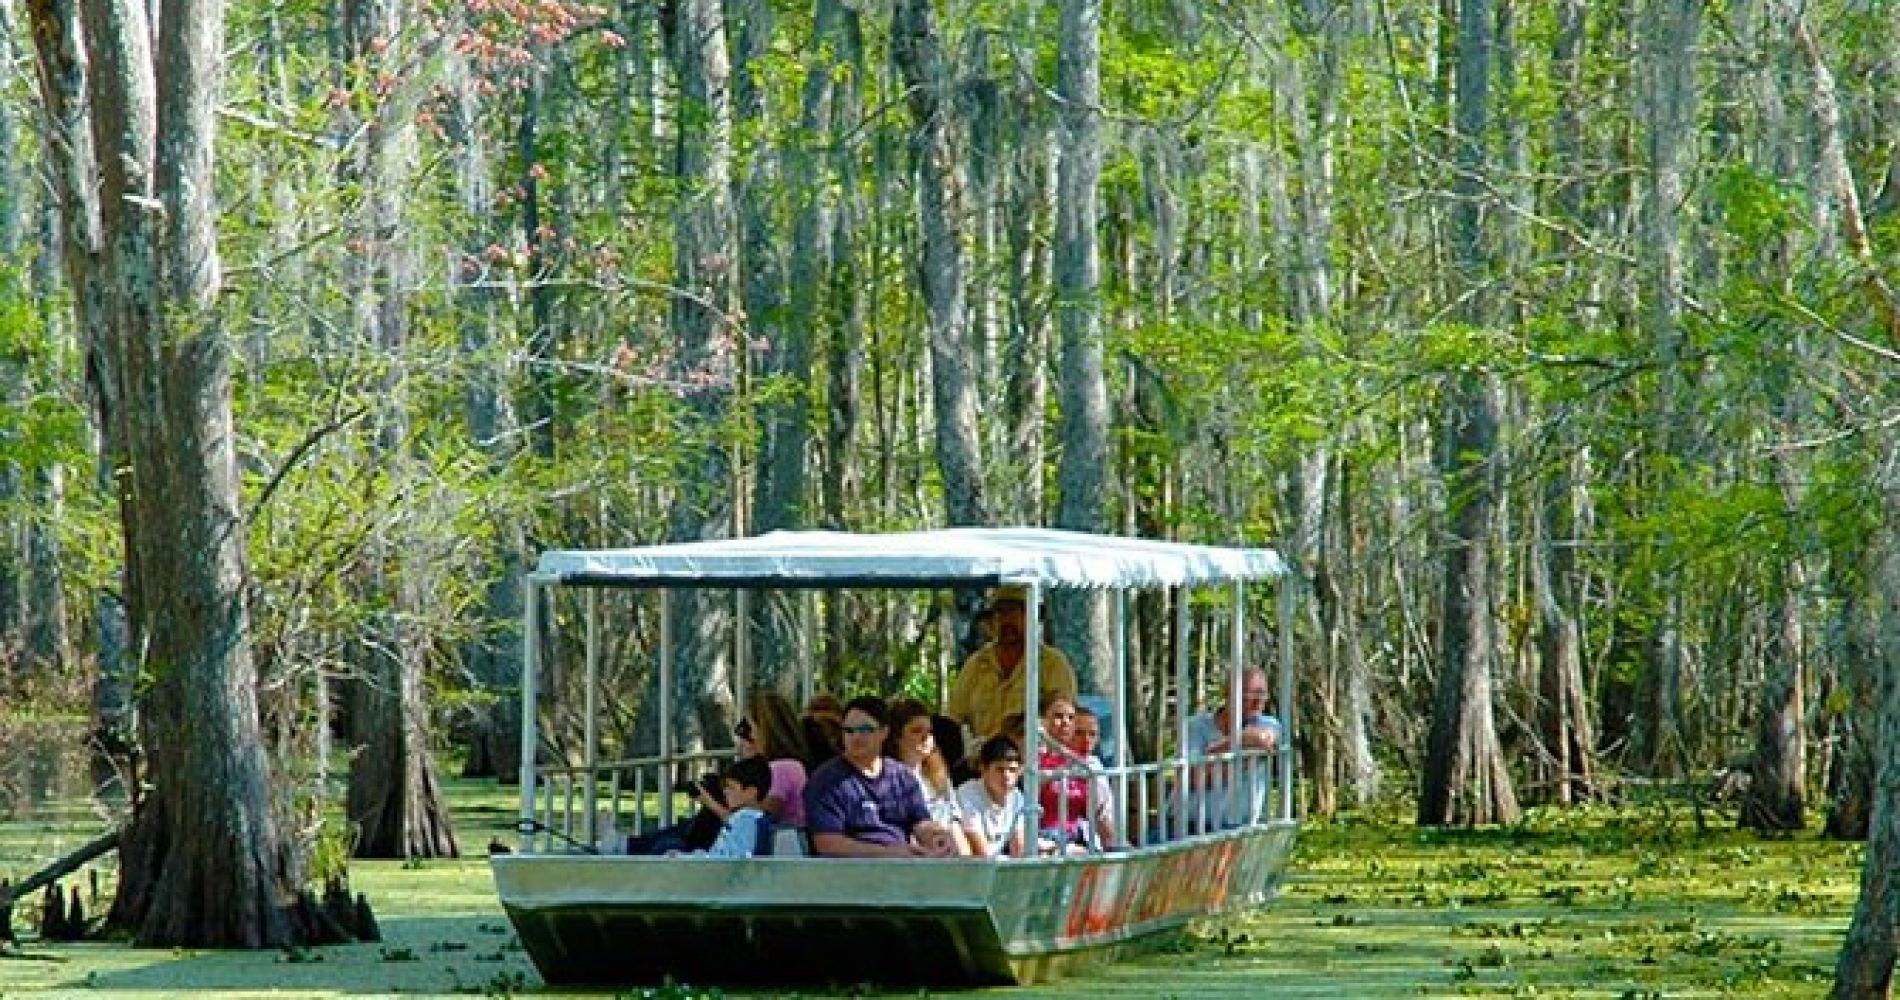 New Orleans 2-Hour Swamp Tour by Boat with Guide